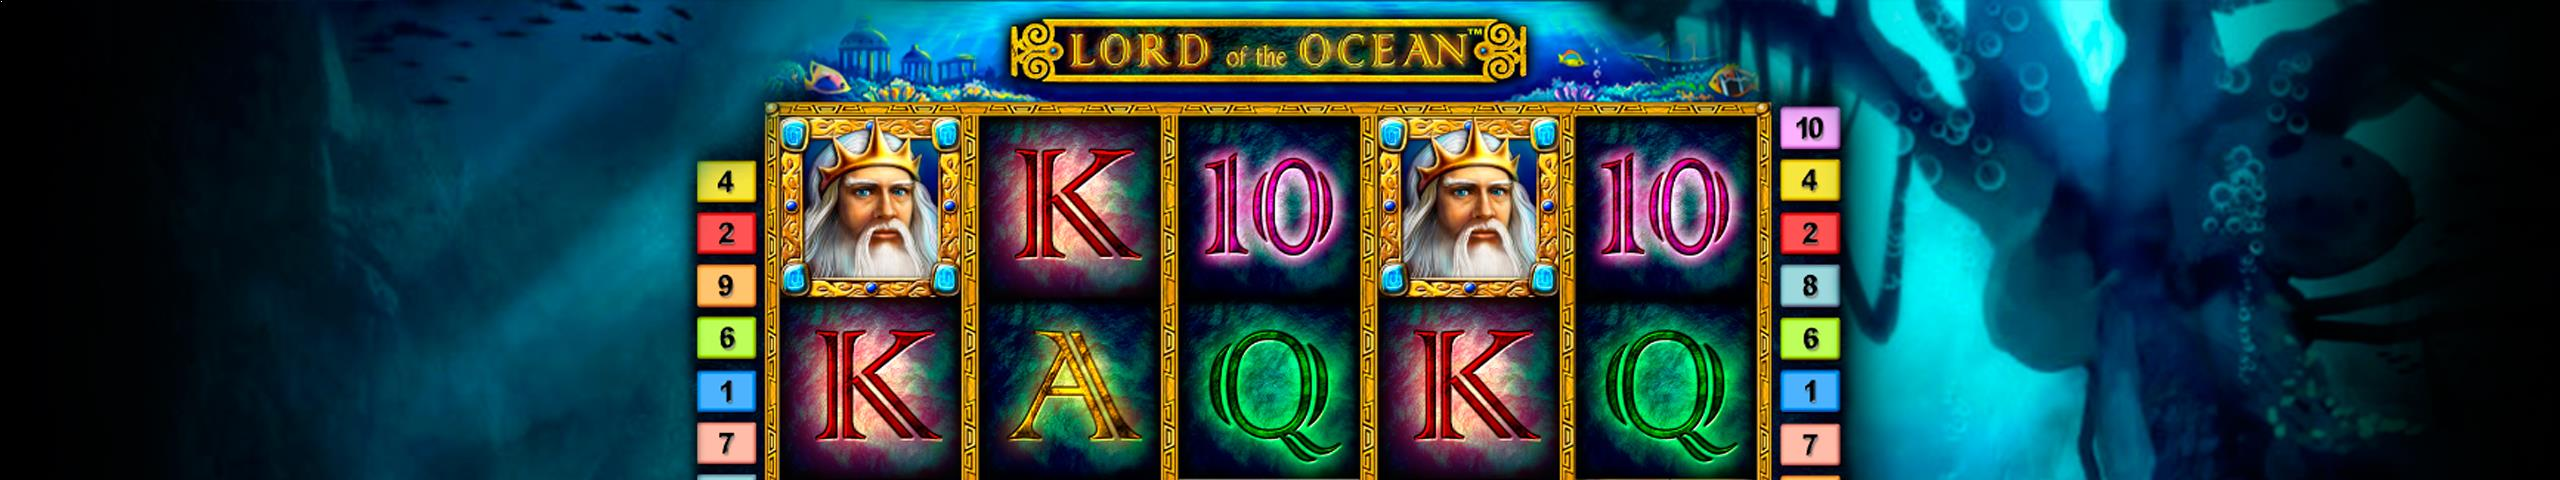 Lord Of The Ocean multabafta Novomatic jocuri slot slider